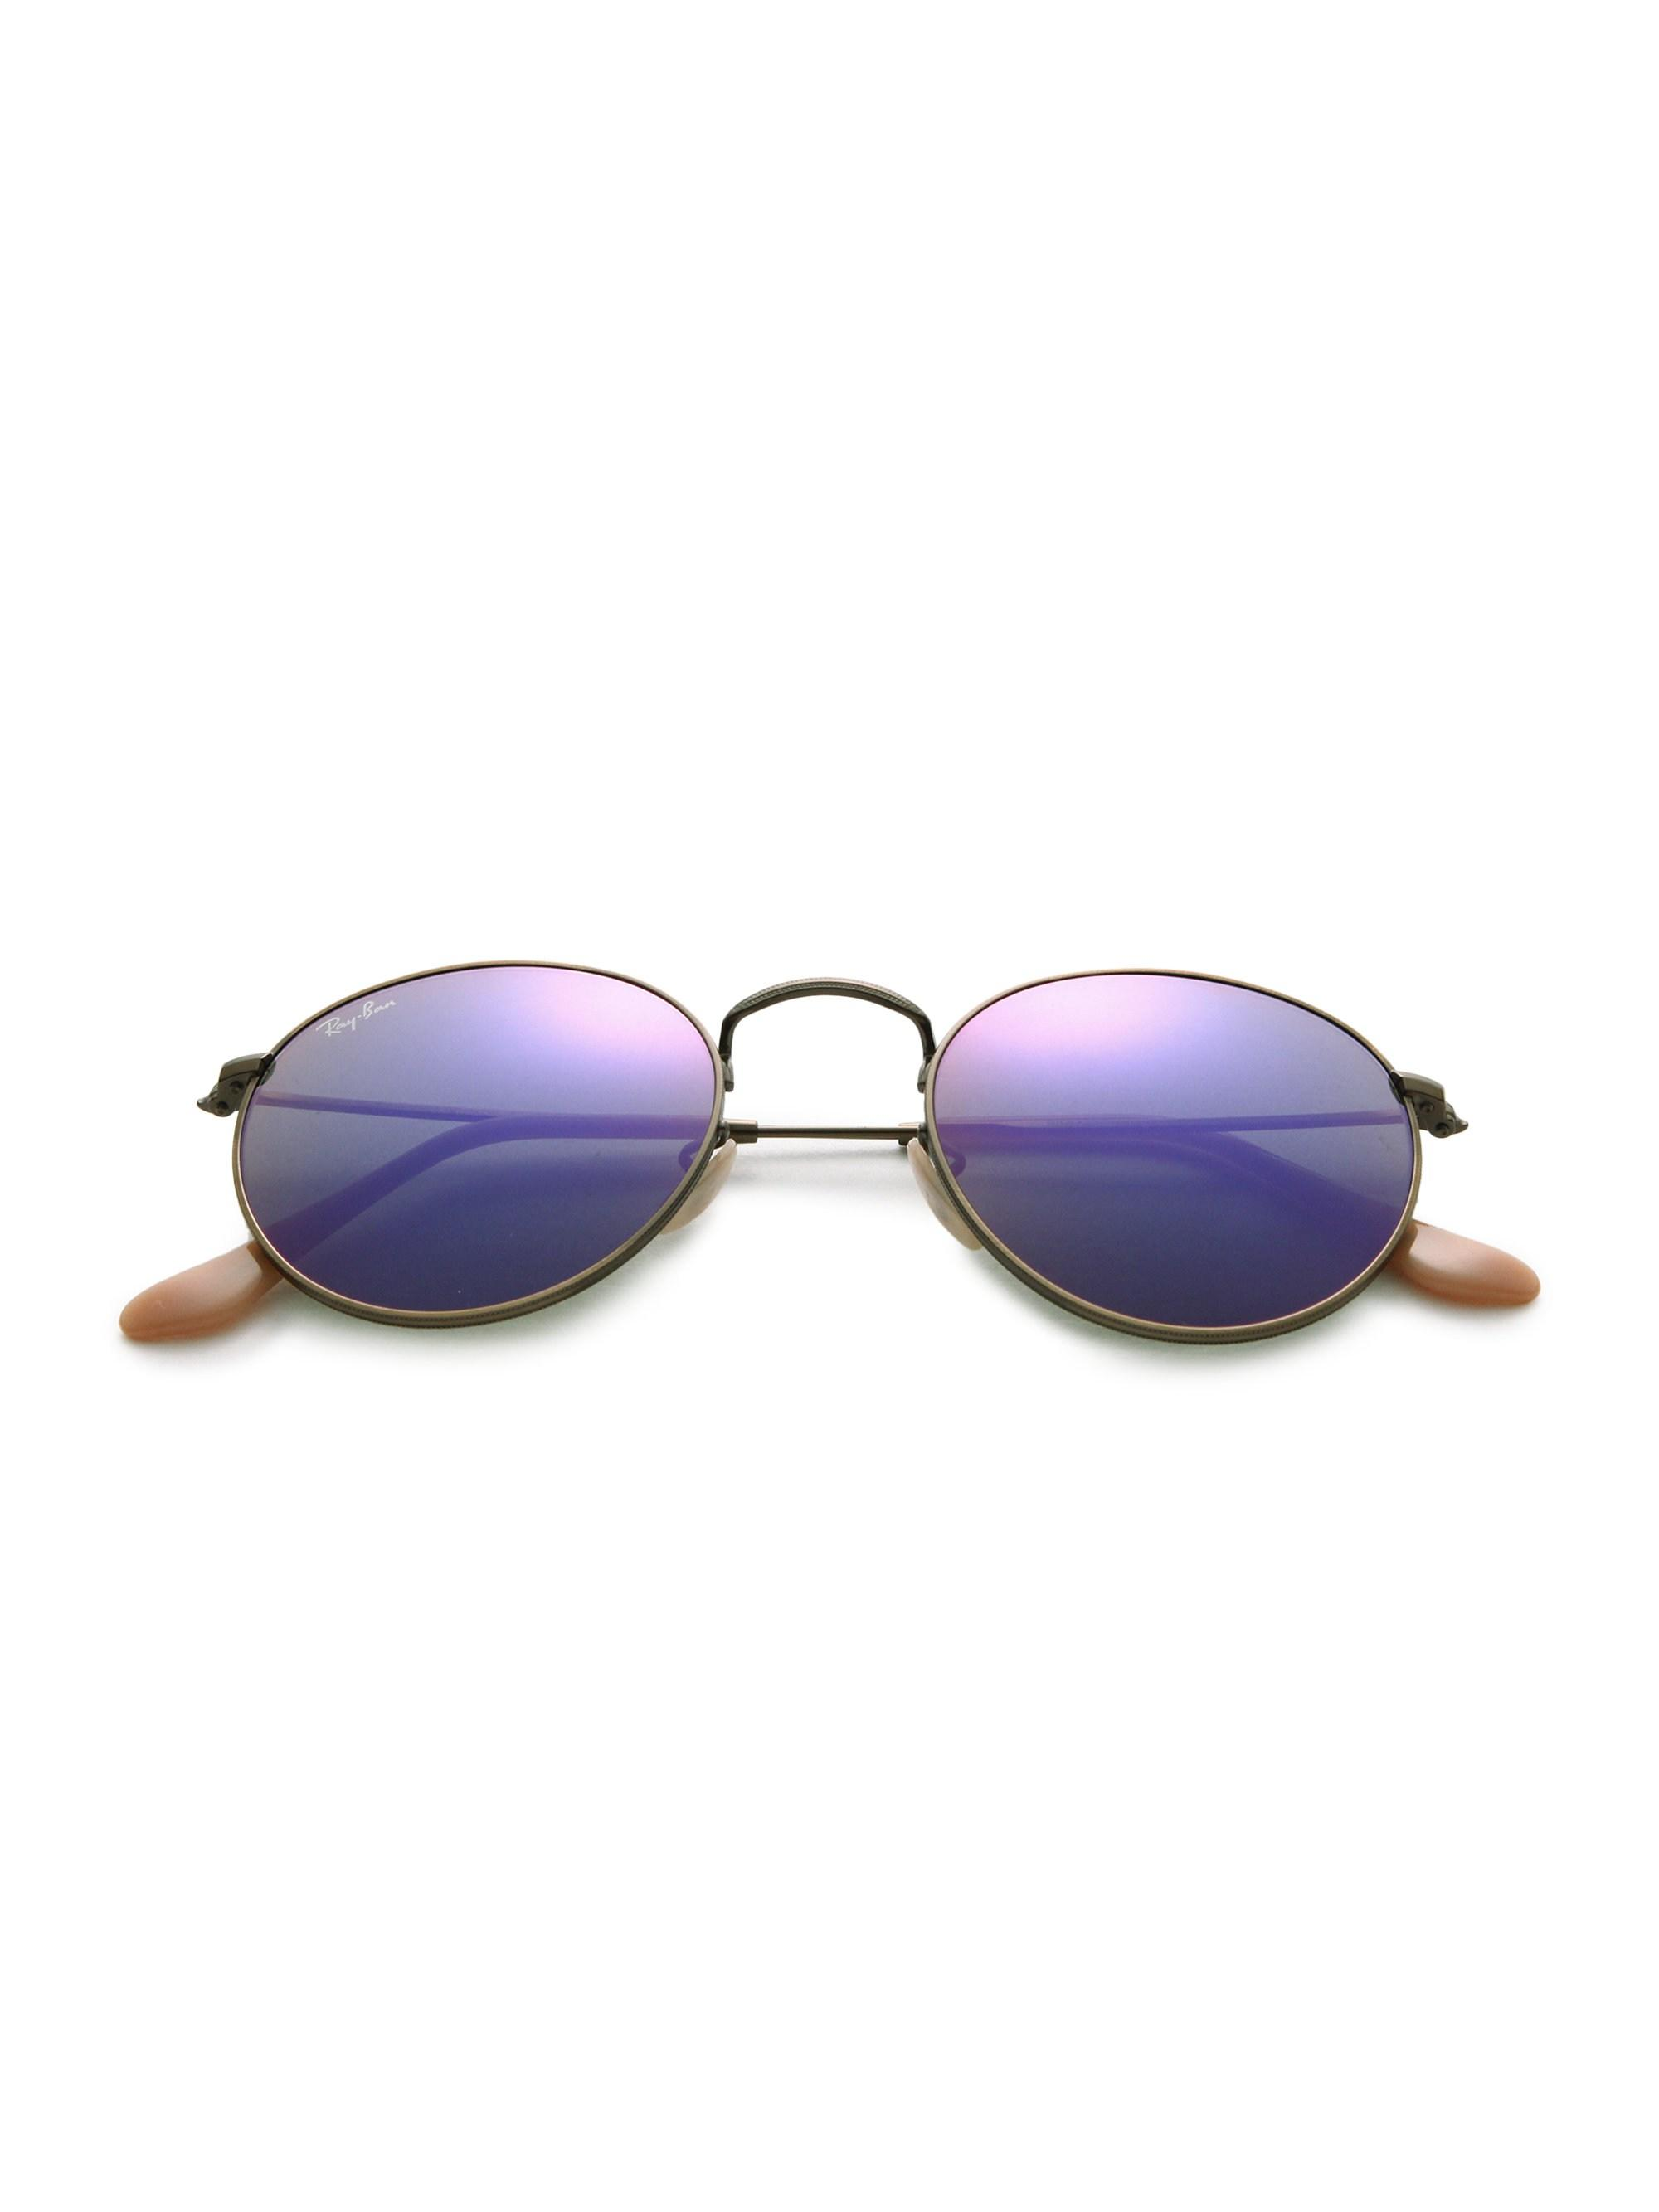 ced6b34466 Ray-Ban 50mm Legends Round Metal Sunglasses in Purple - Lyst